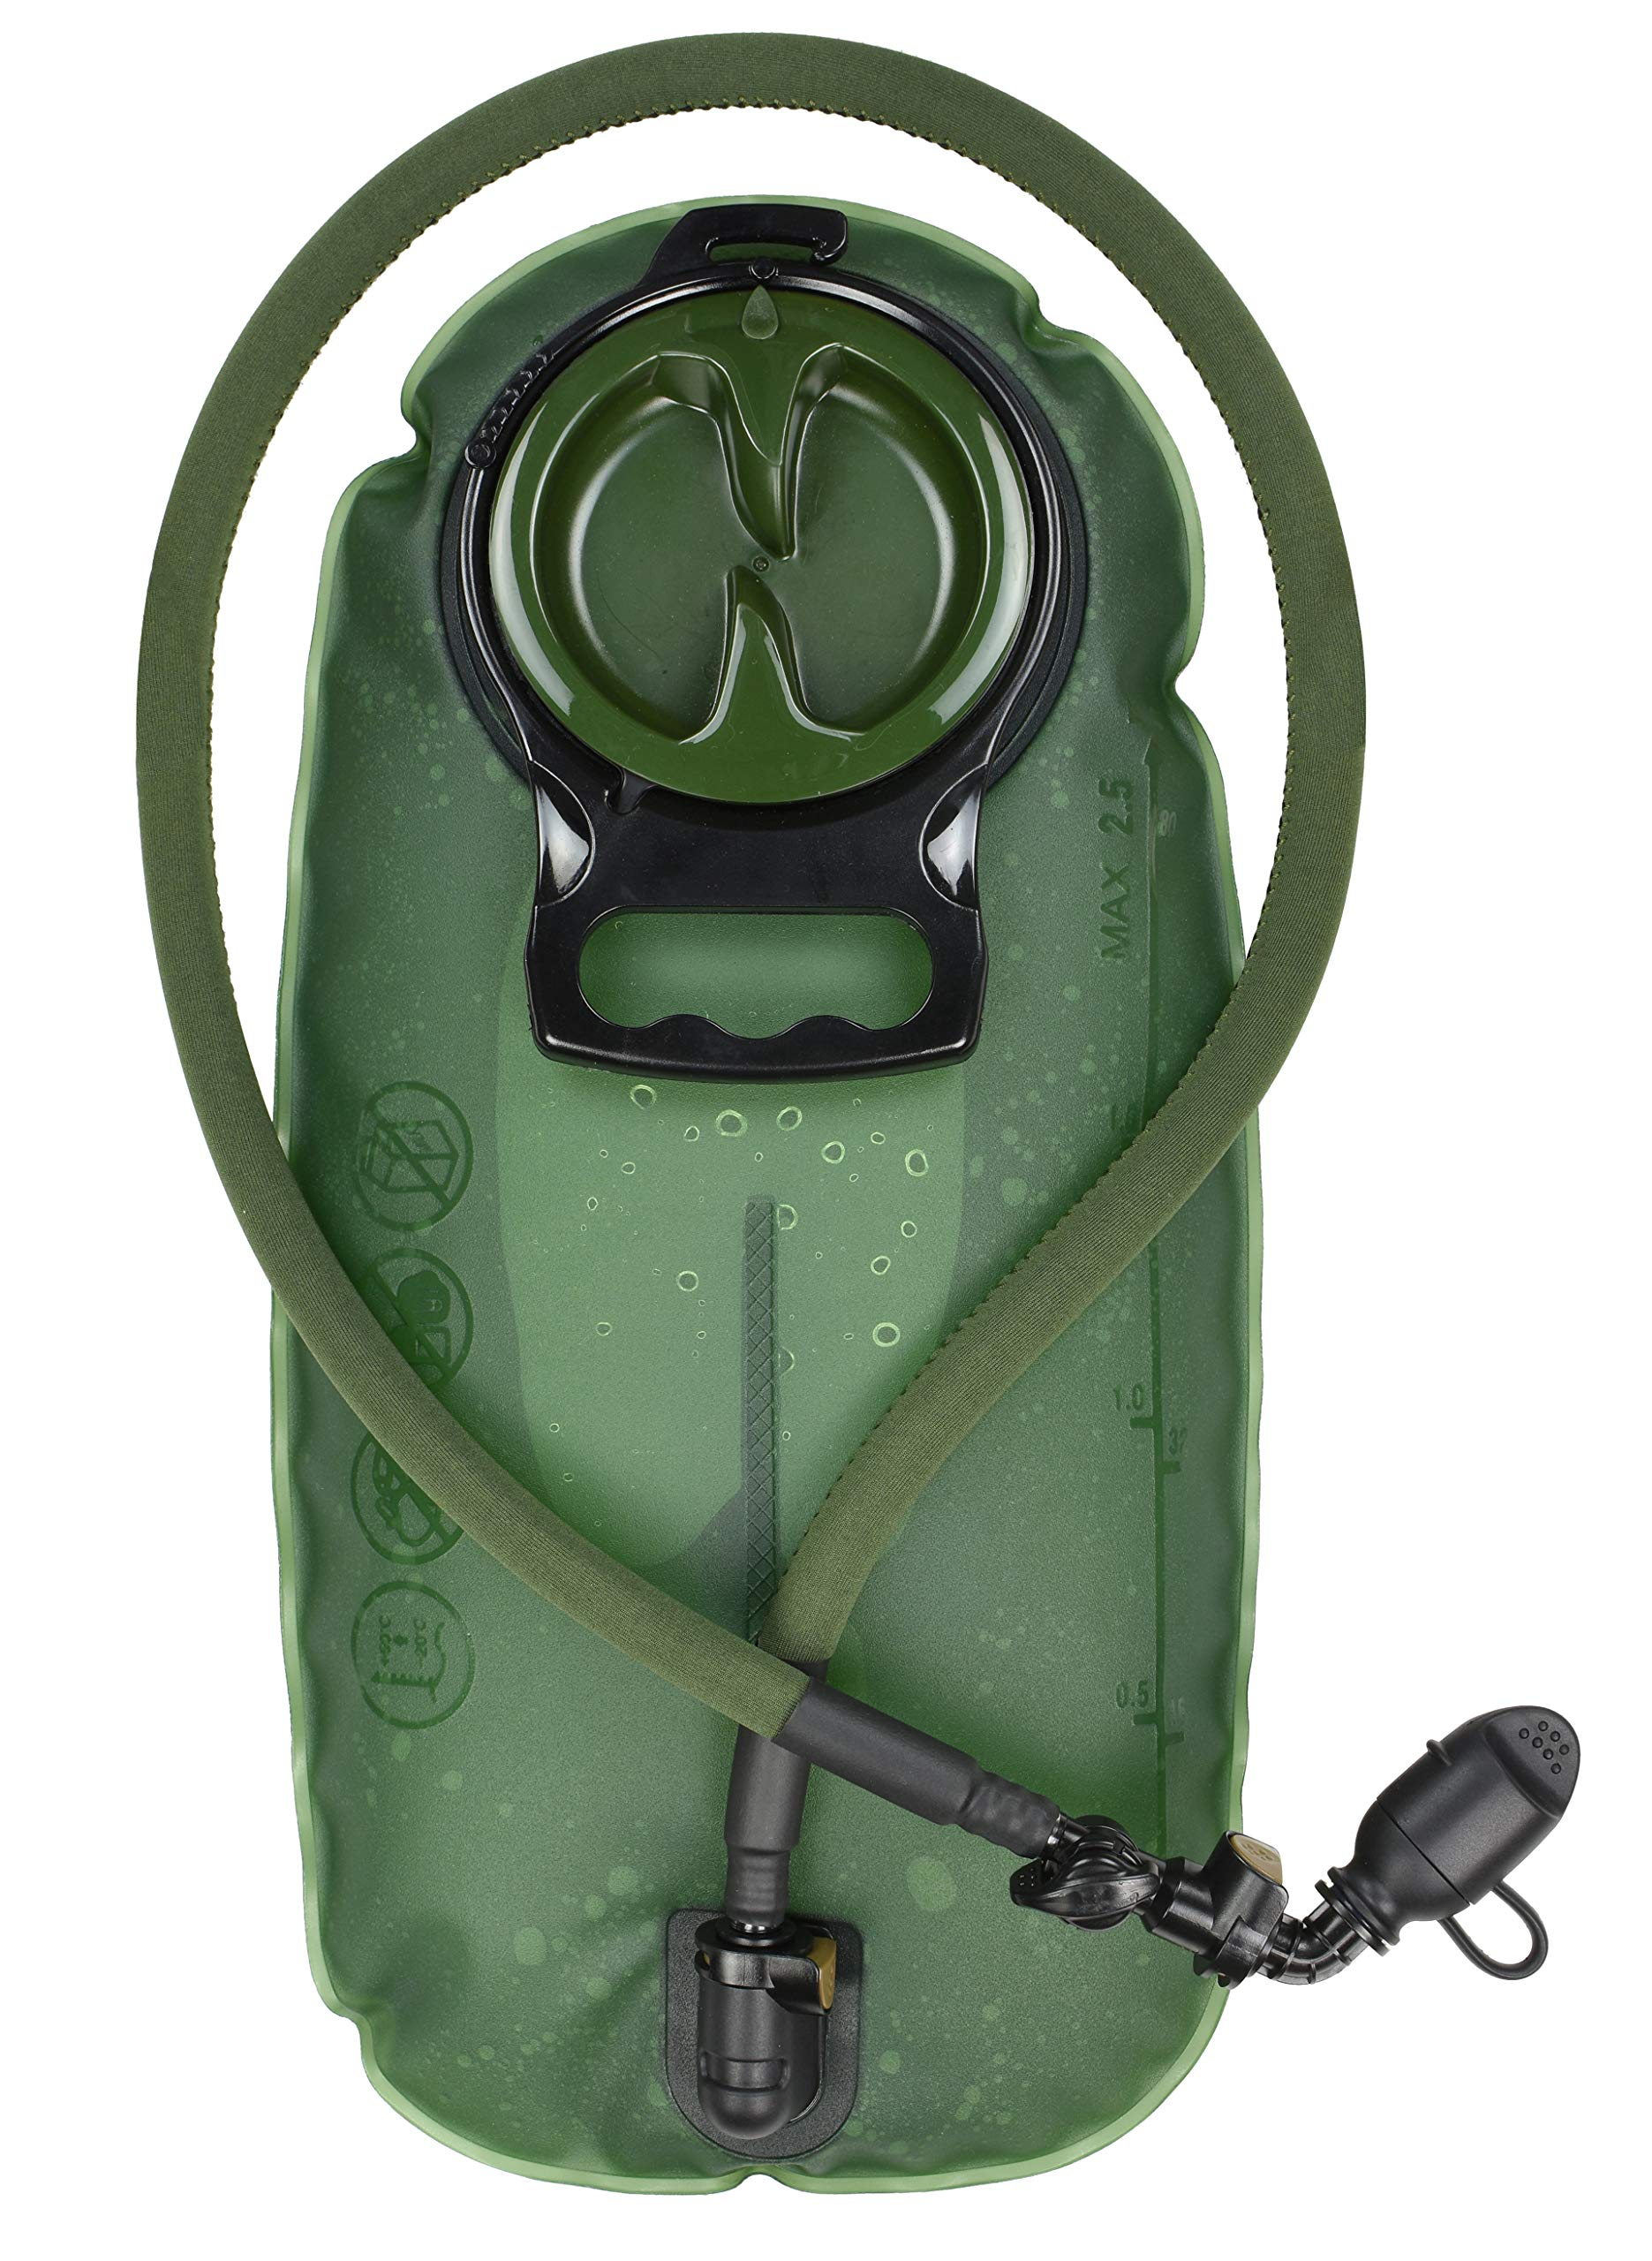 MARCHWAY 2L/2.5L/3L TPU Hydration Bladder, Tasteless BPA Free Water Reservoir Bag with Insulated Tube for Hydration Pack for Cycling, Hiking, Running, Climbing, Biking (2.5L Green 85oz) by MARCHWAY